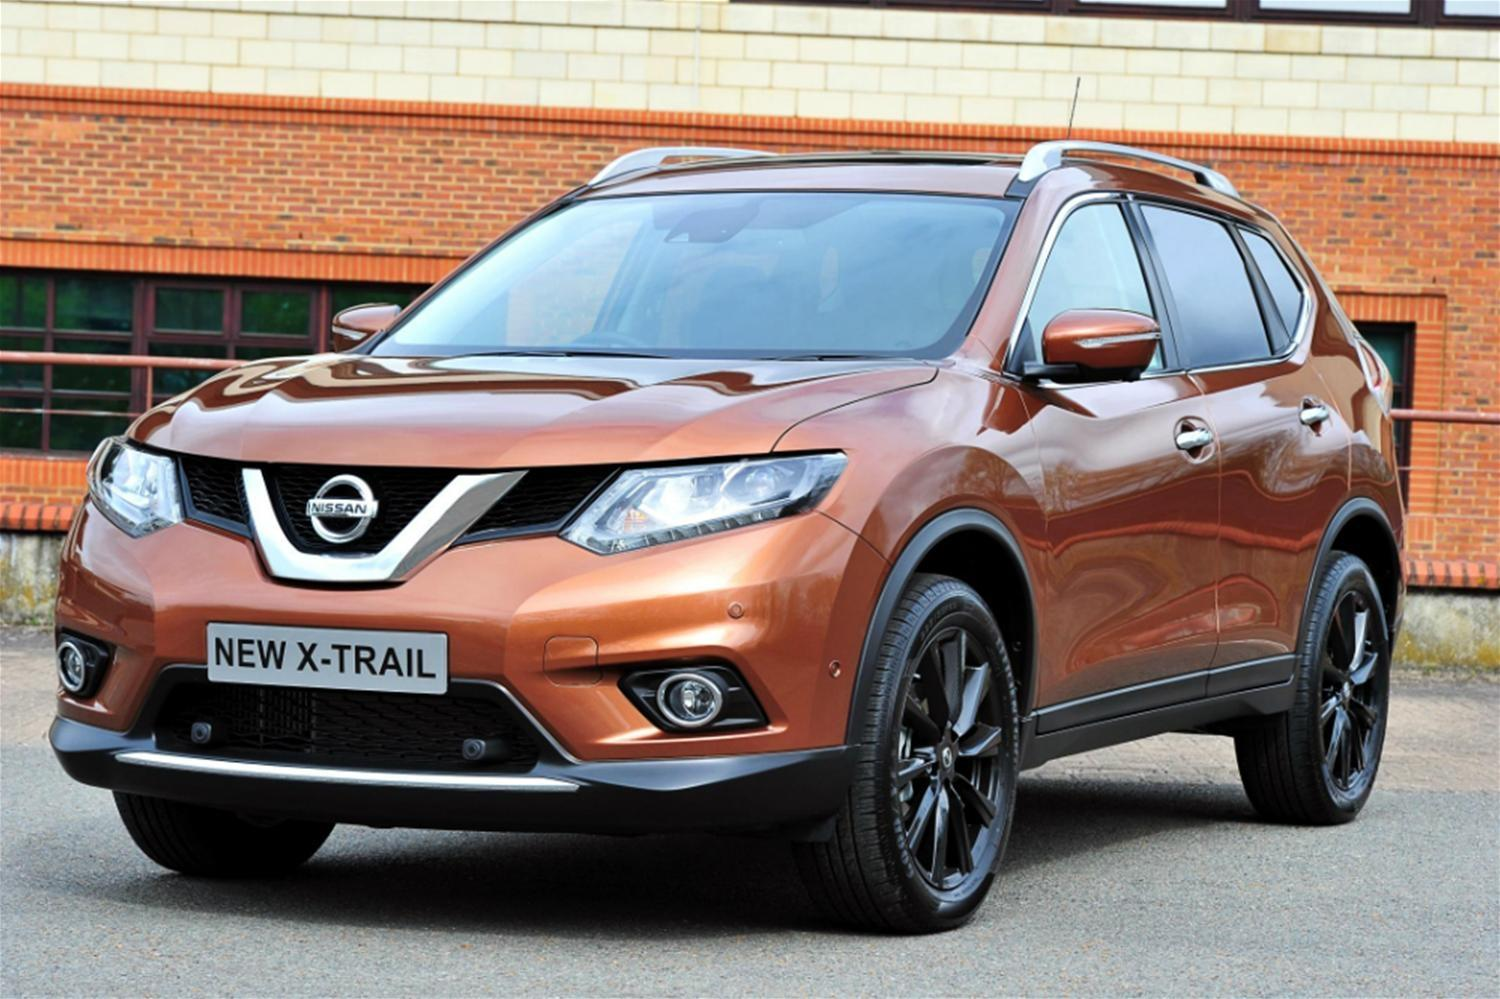 Nissan Crowdsourcing New X-Trail Colour Name Online